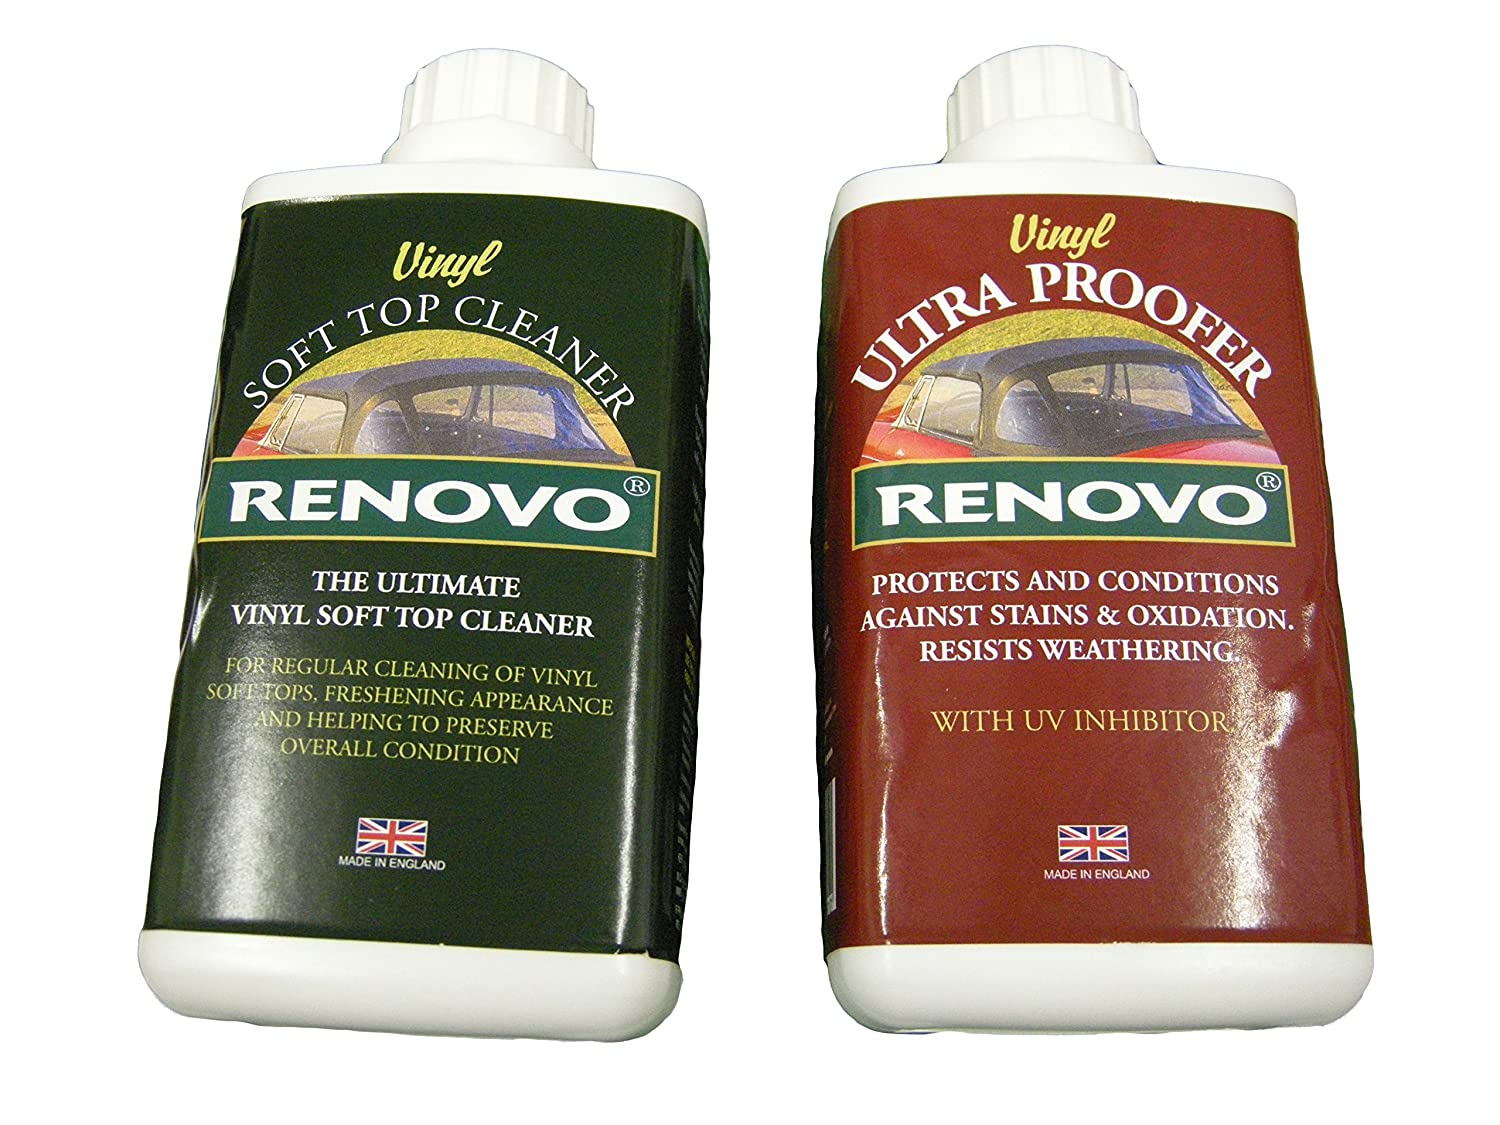 Renovo REN-KIT11 Double Cleaning Kit includes Vinyl Cleaner and Proofer, 500 ml Renovo International